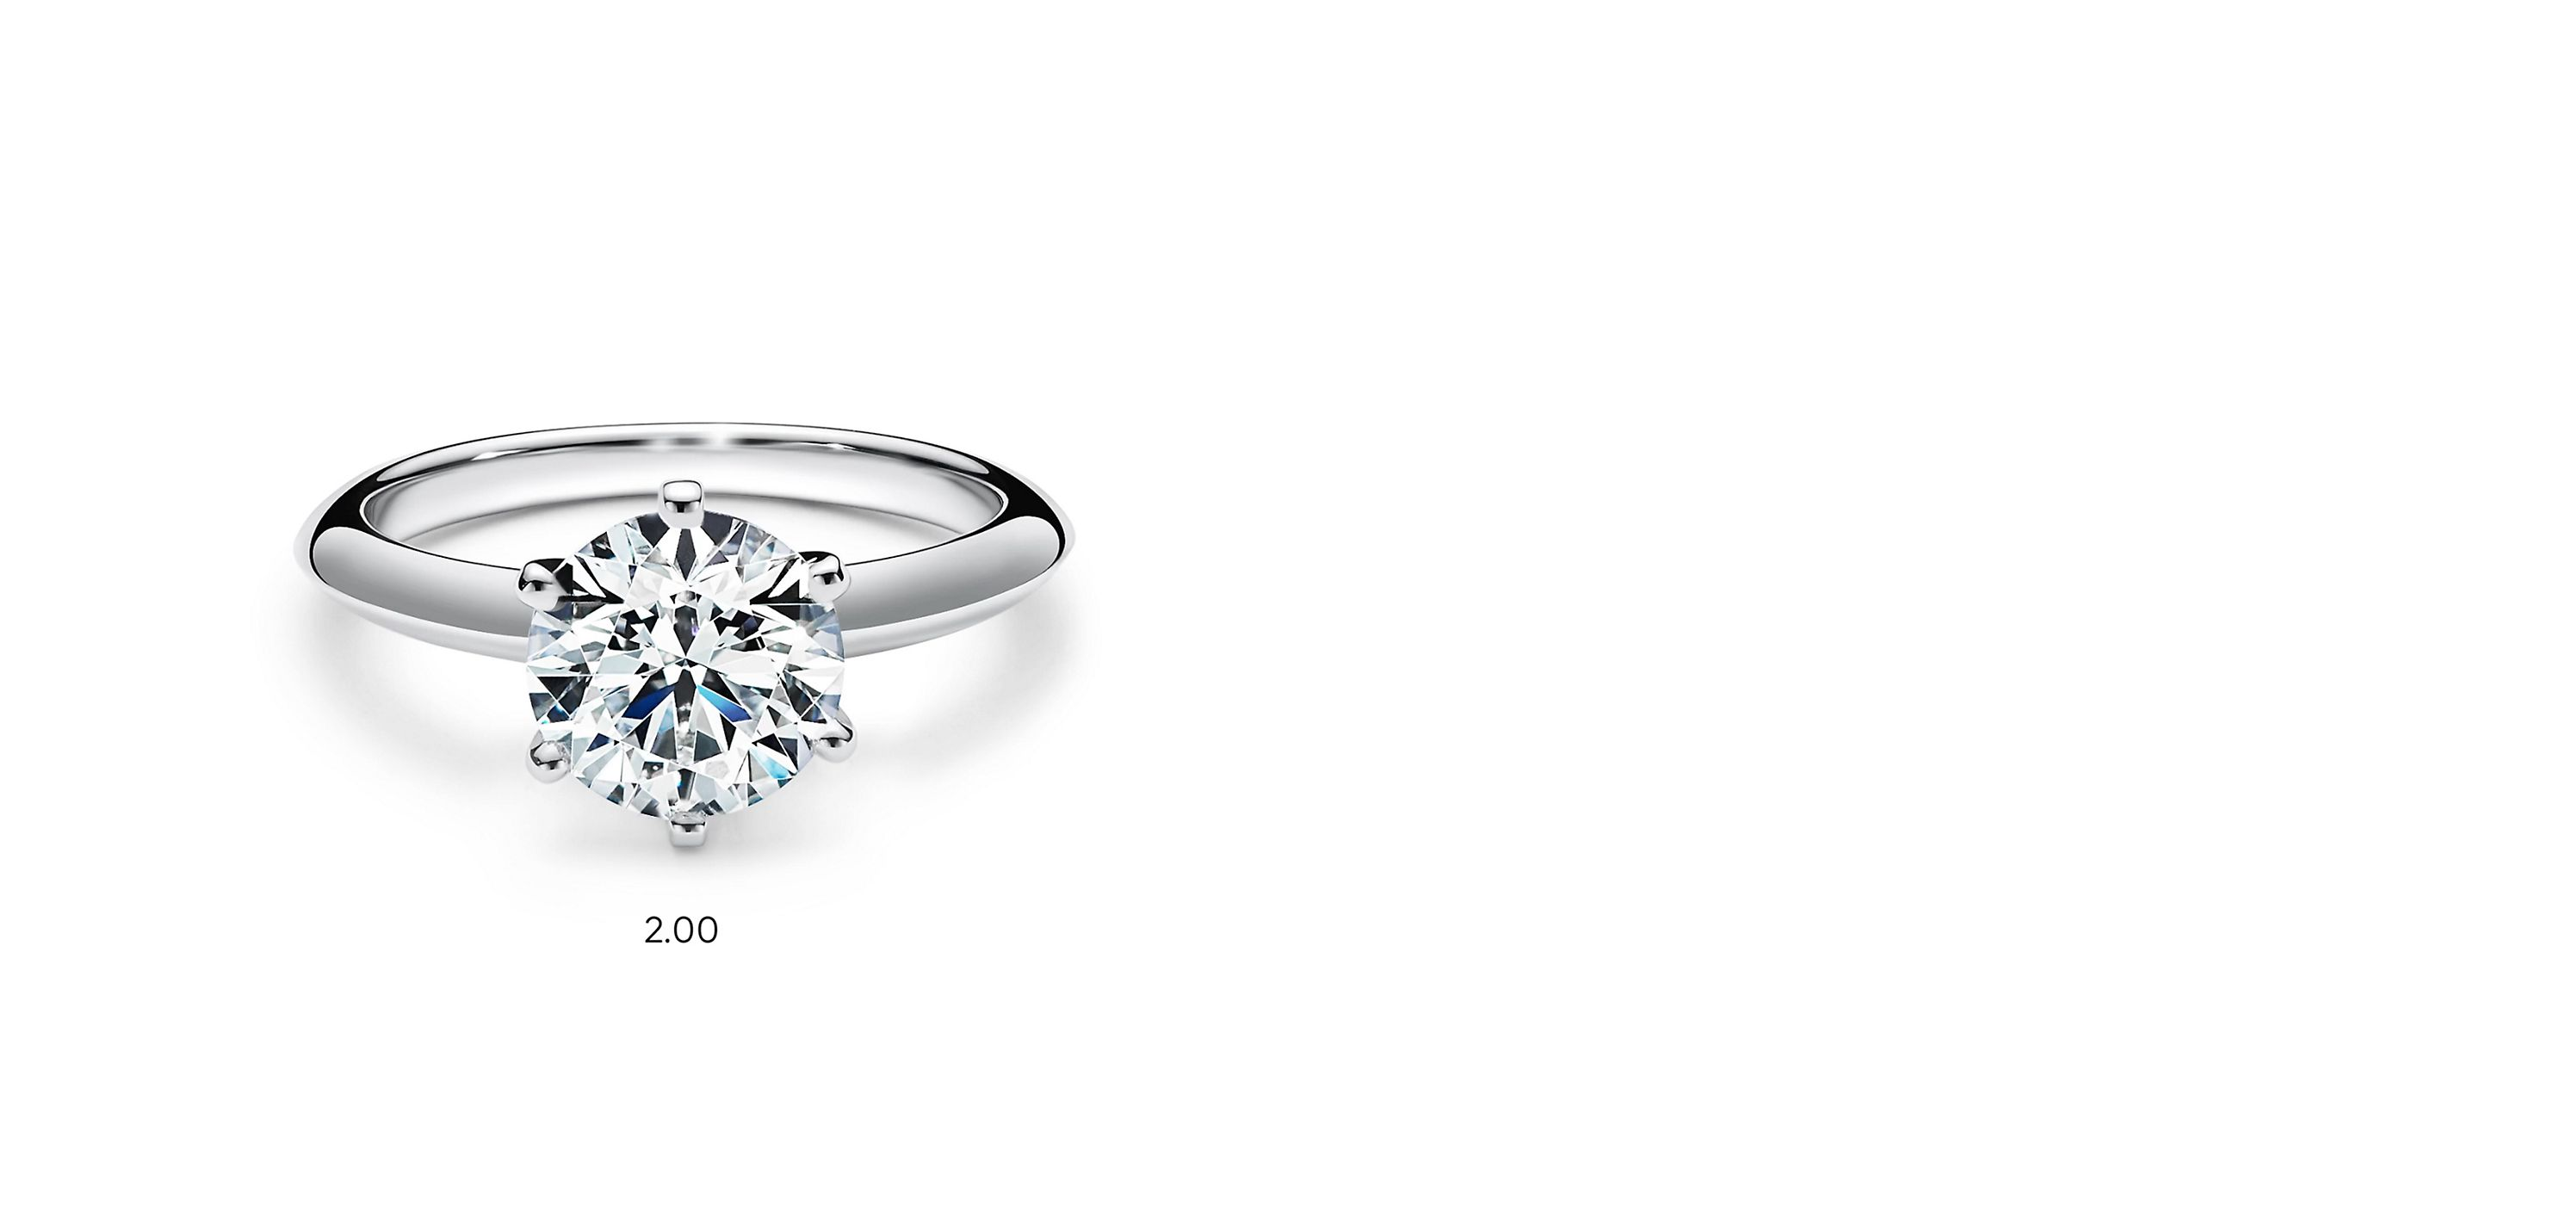 ea6bf54dc0f00 The Guide to Diamonds | Tiffany & Co.